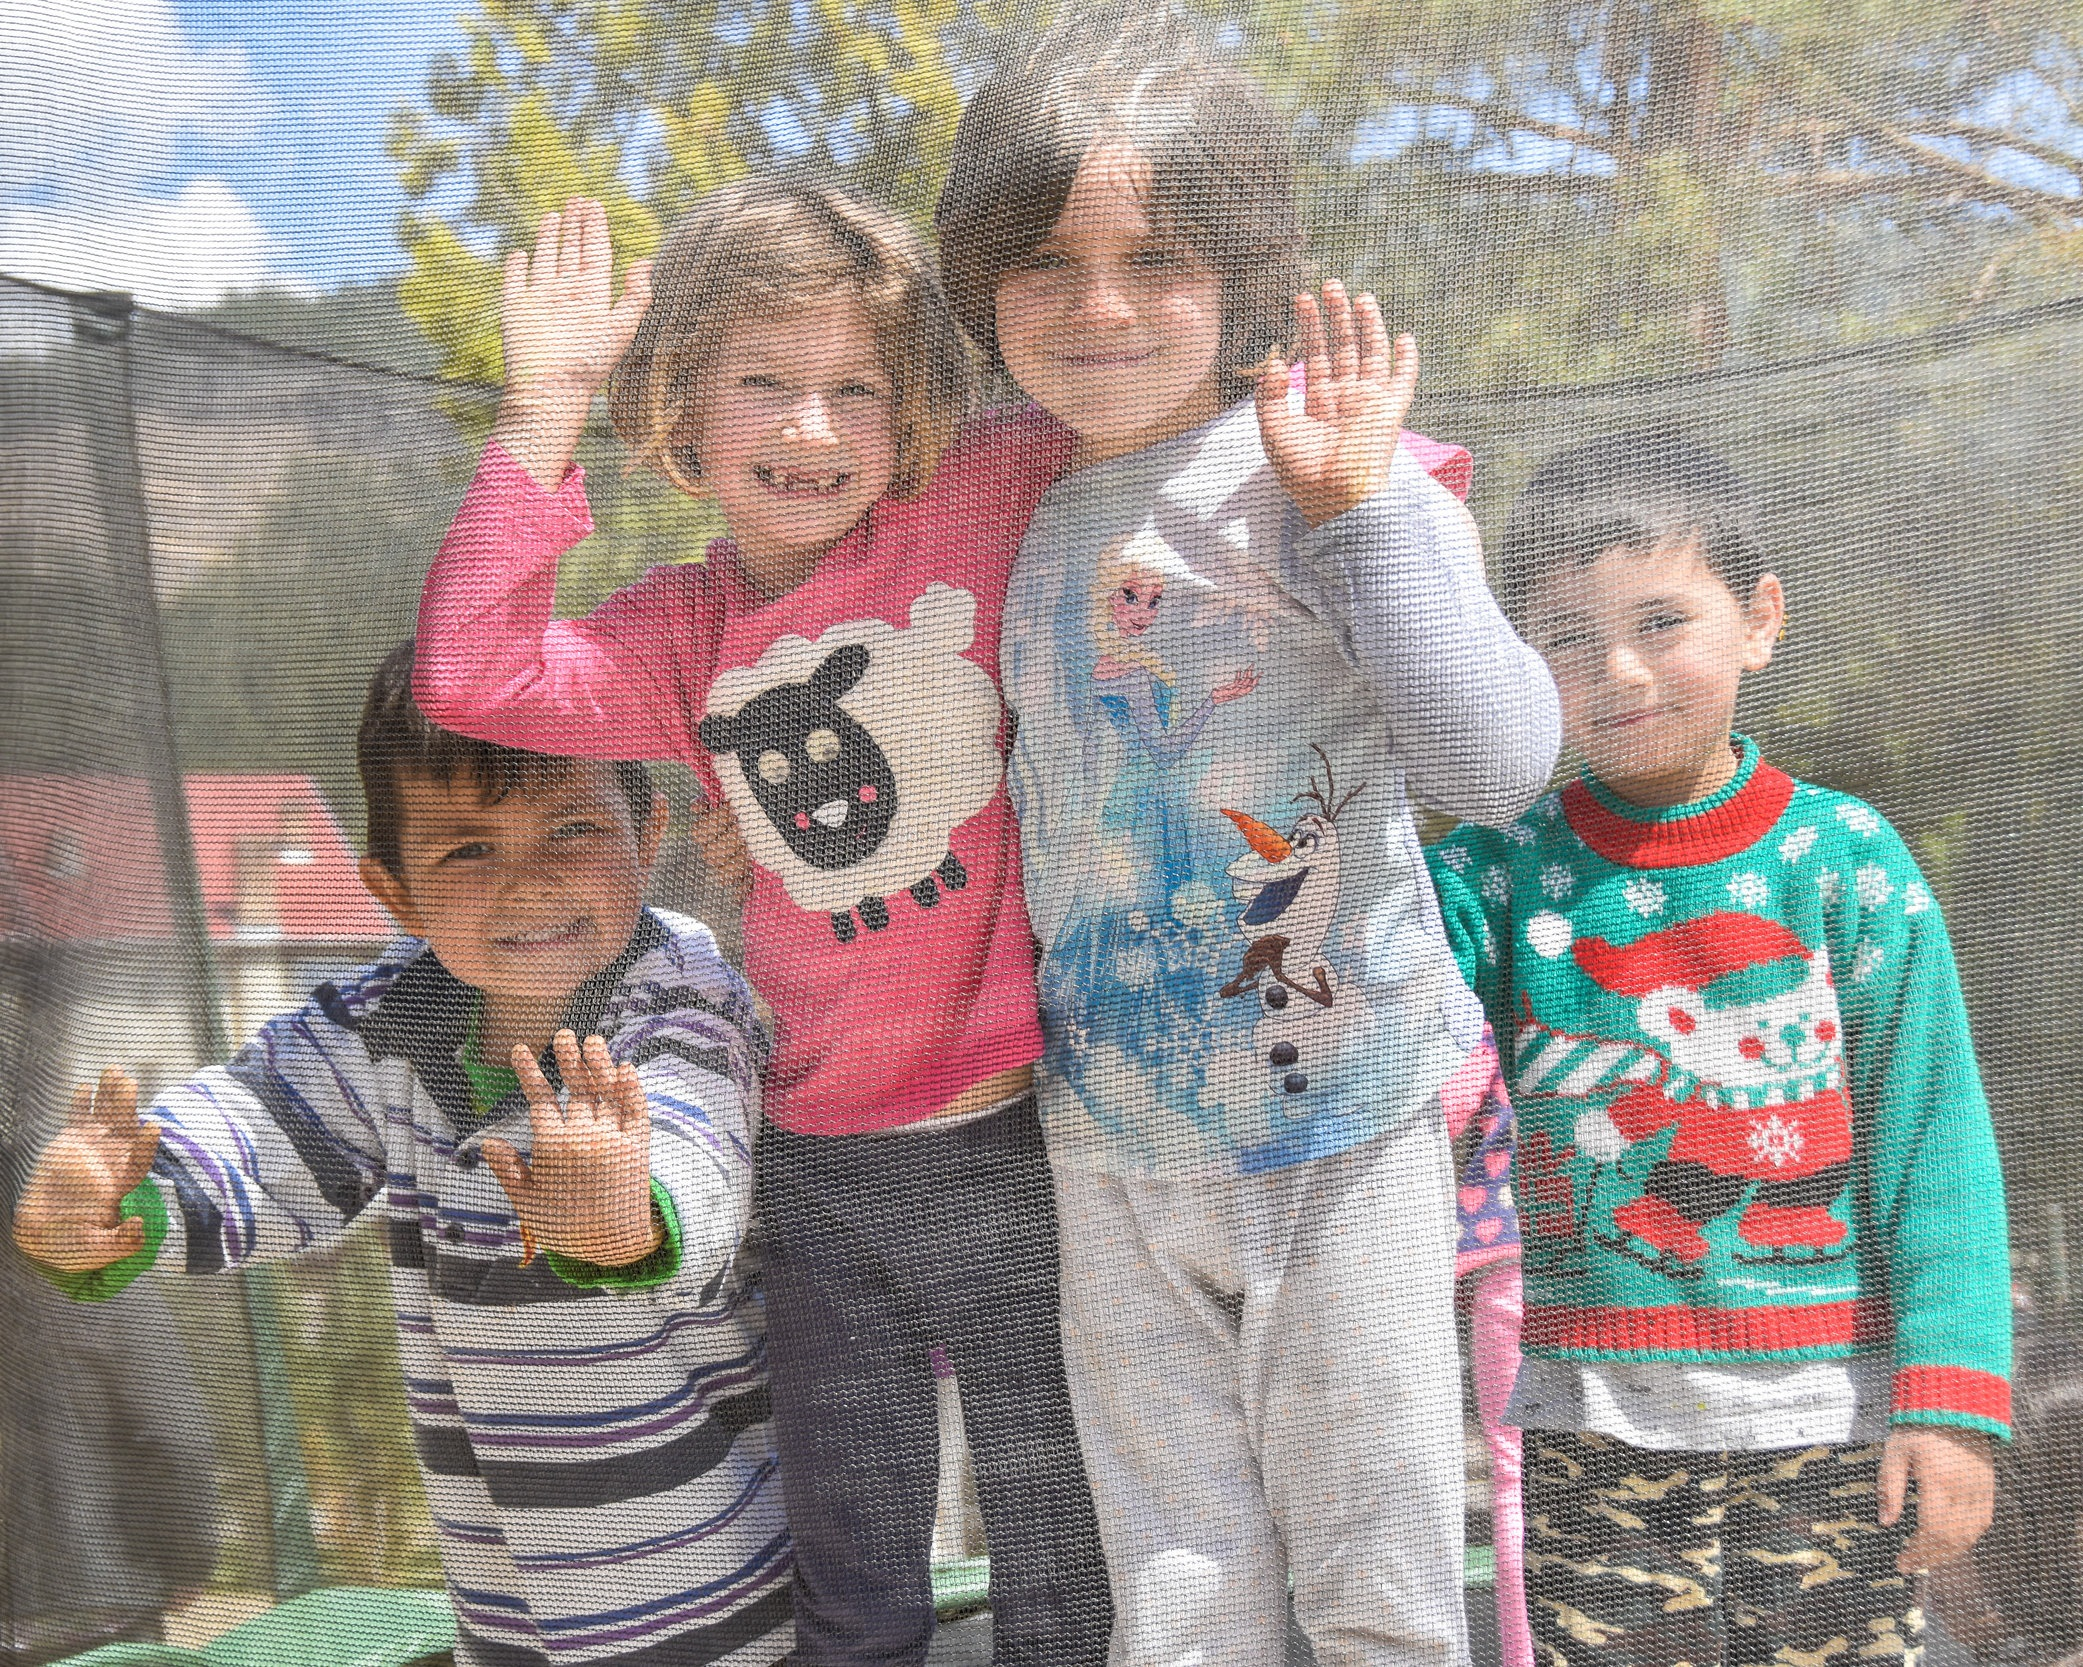 HOME - Our Children's Home is more than just an orphanage – we strive to build a culture of family and community so that our children have a safe environment to come home to every day. We also provide our children with the right opportunities so they can learn, grow, and become successful. This, in turn, provides the emotional and physical infrastructure that every child needs to feel confident and empowered to dream. We want them to become agents of change – first in their own lives and then in the broader world around them.